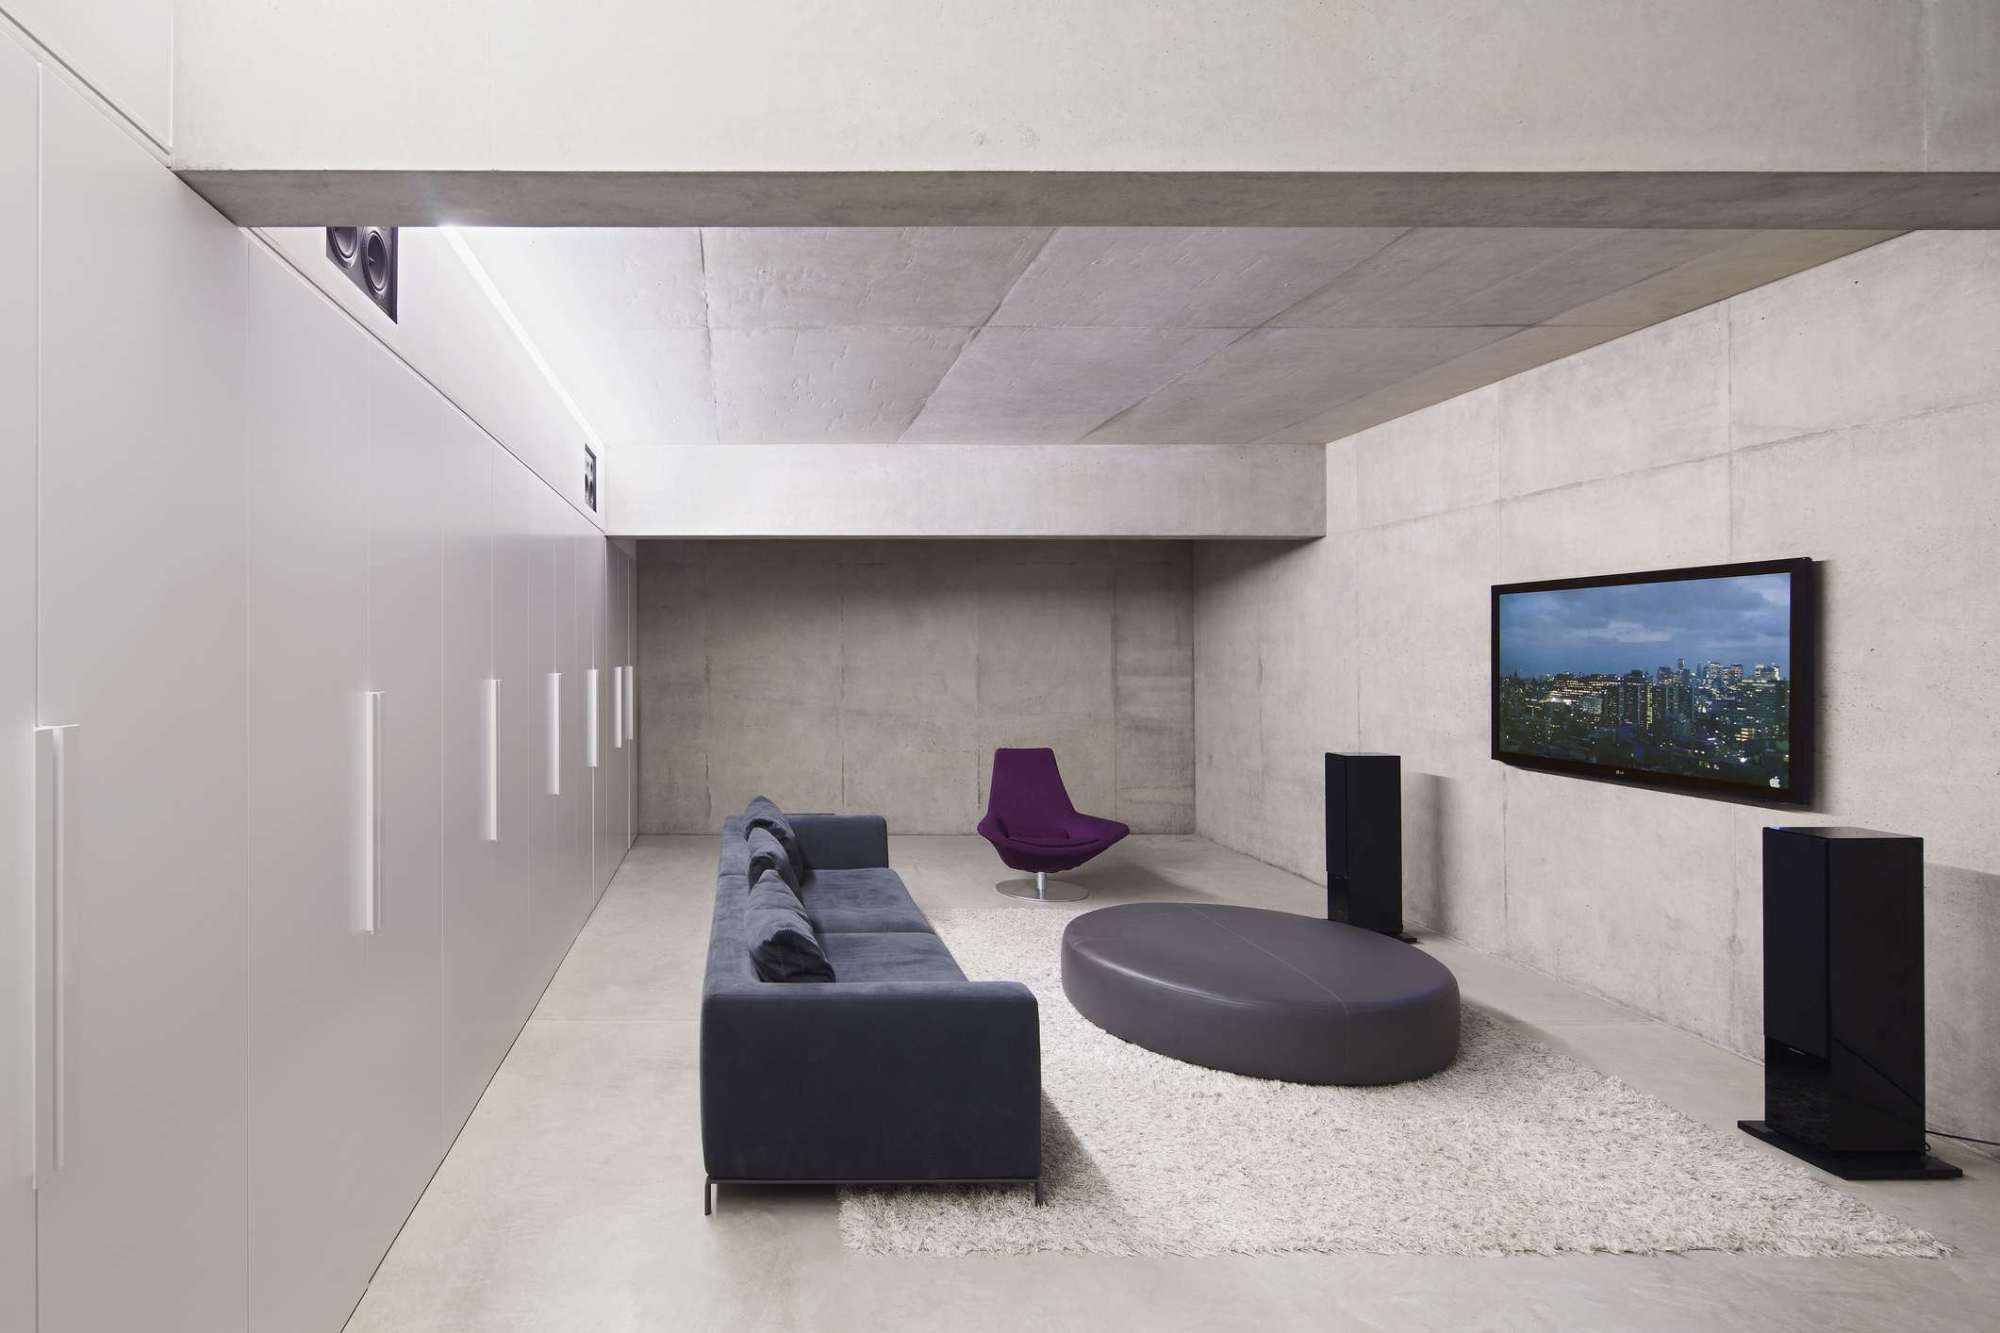 hight resolution of a modern living room with wall mounted tv stereo speakers and a couch